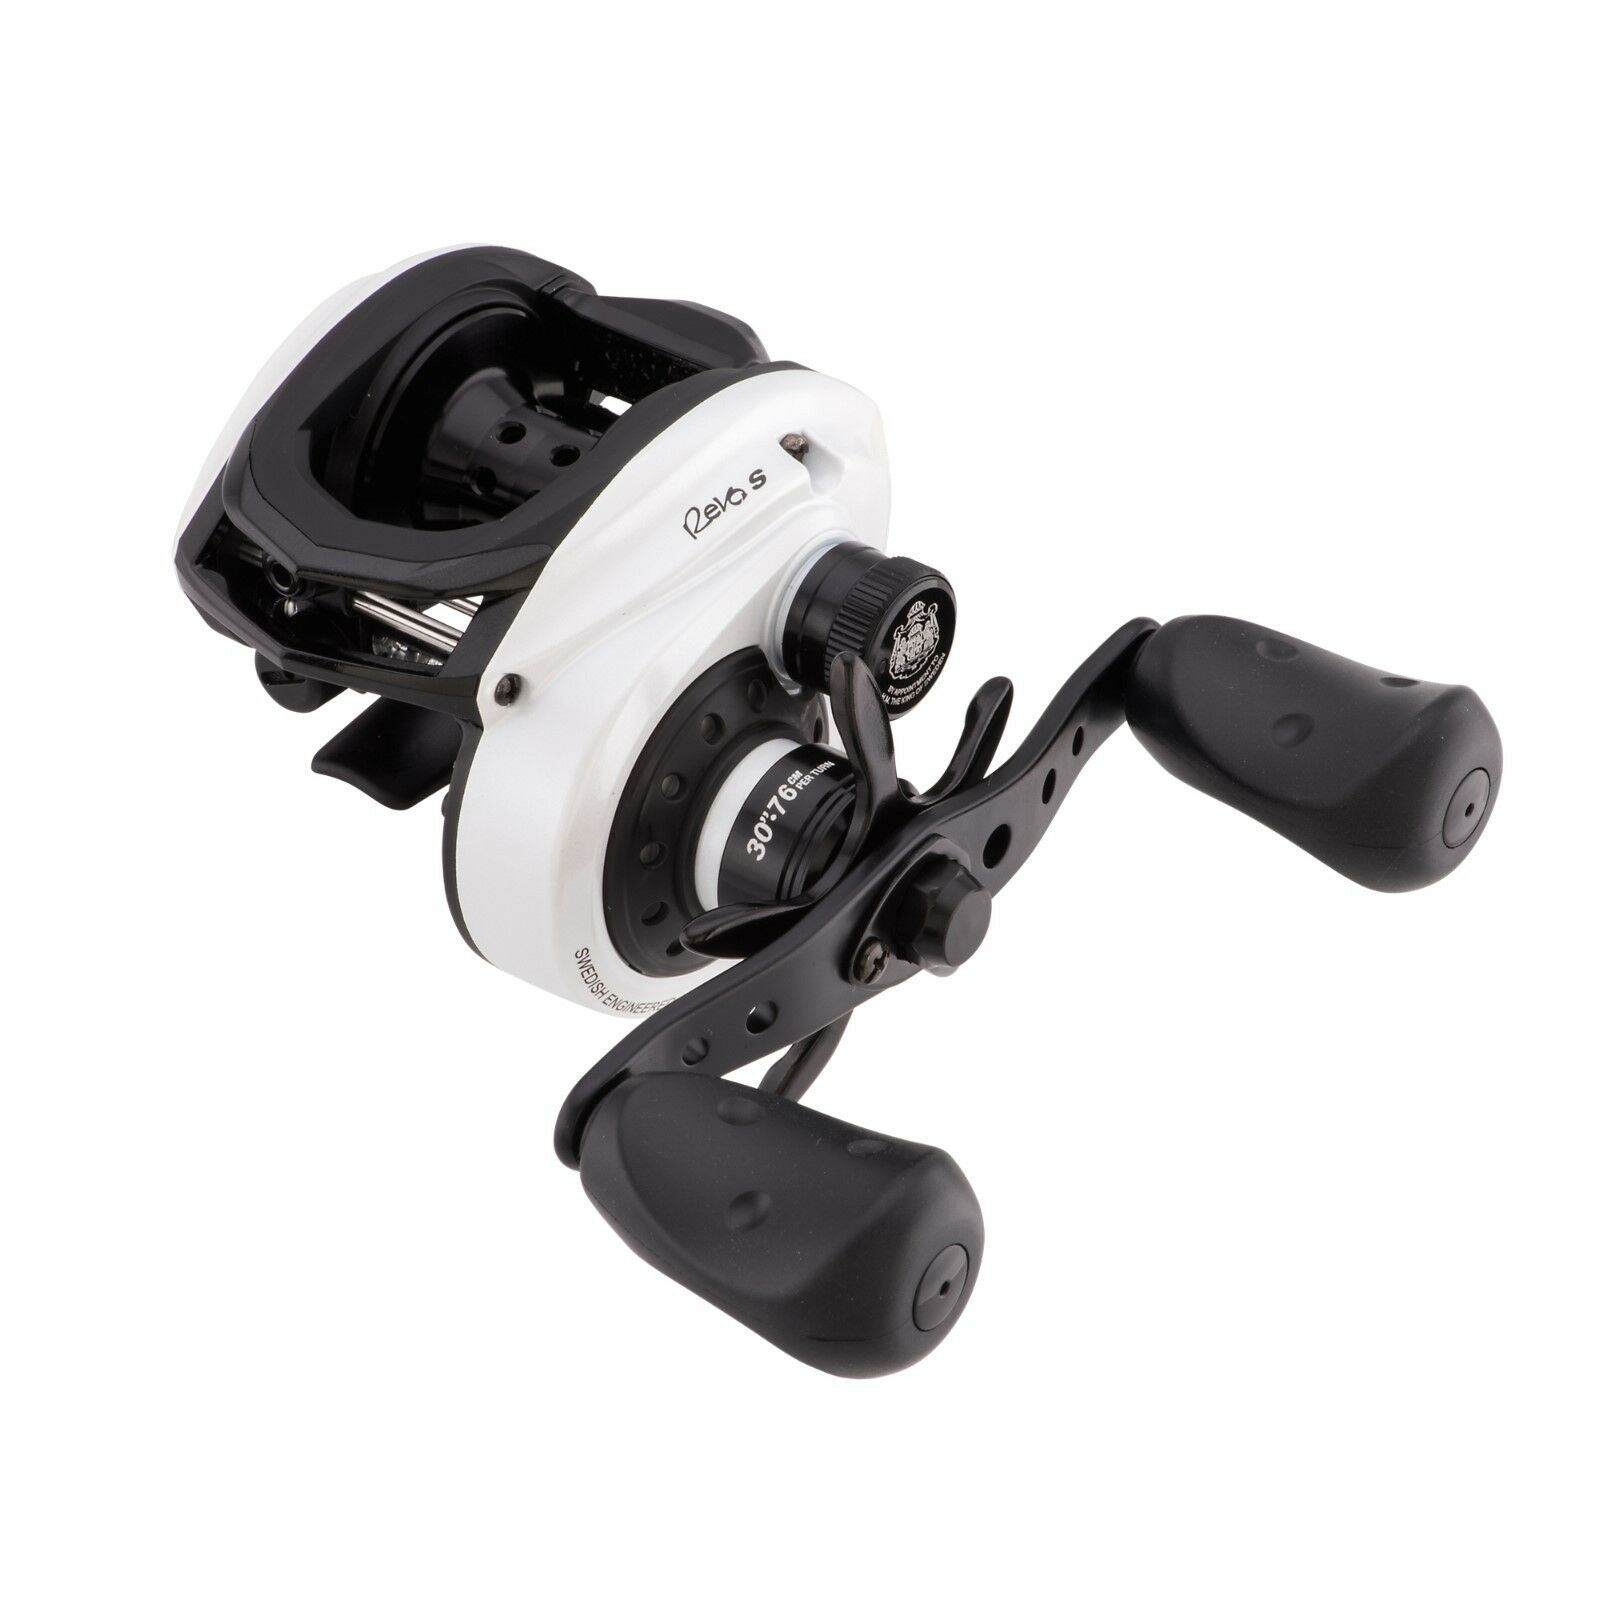 Abu Garcia NEW REVO4 S - Low Profile Baitcaster Reel  - NEW FOR 2018  not to be missed!